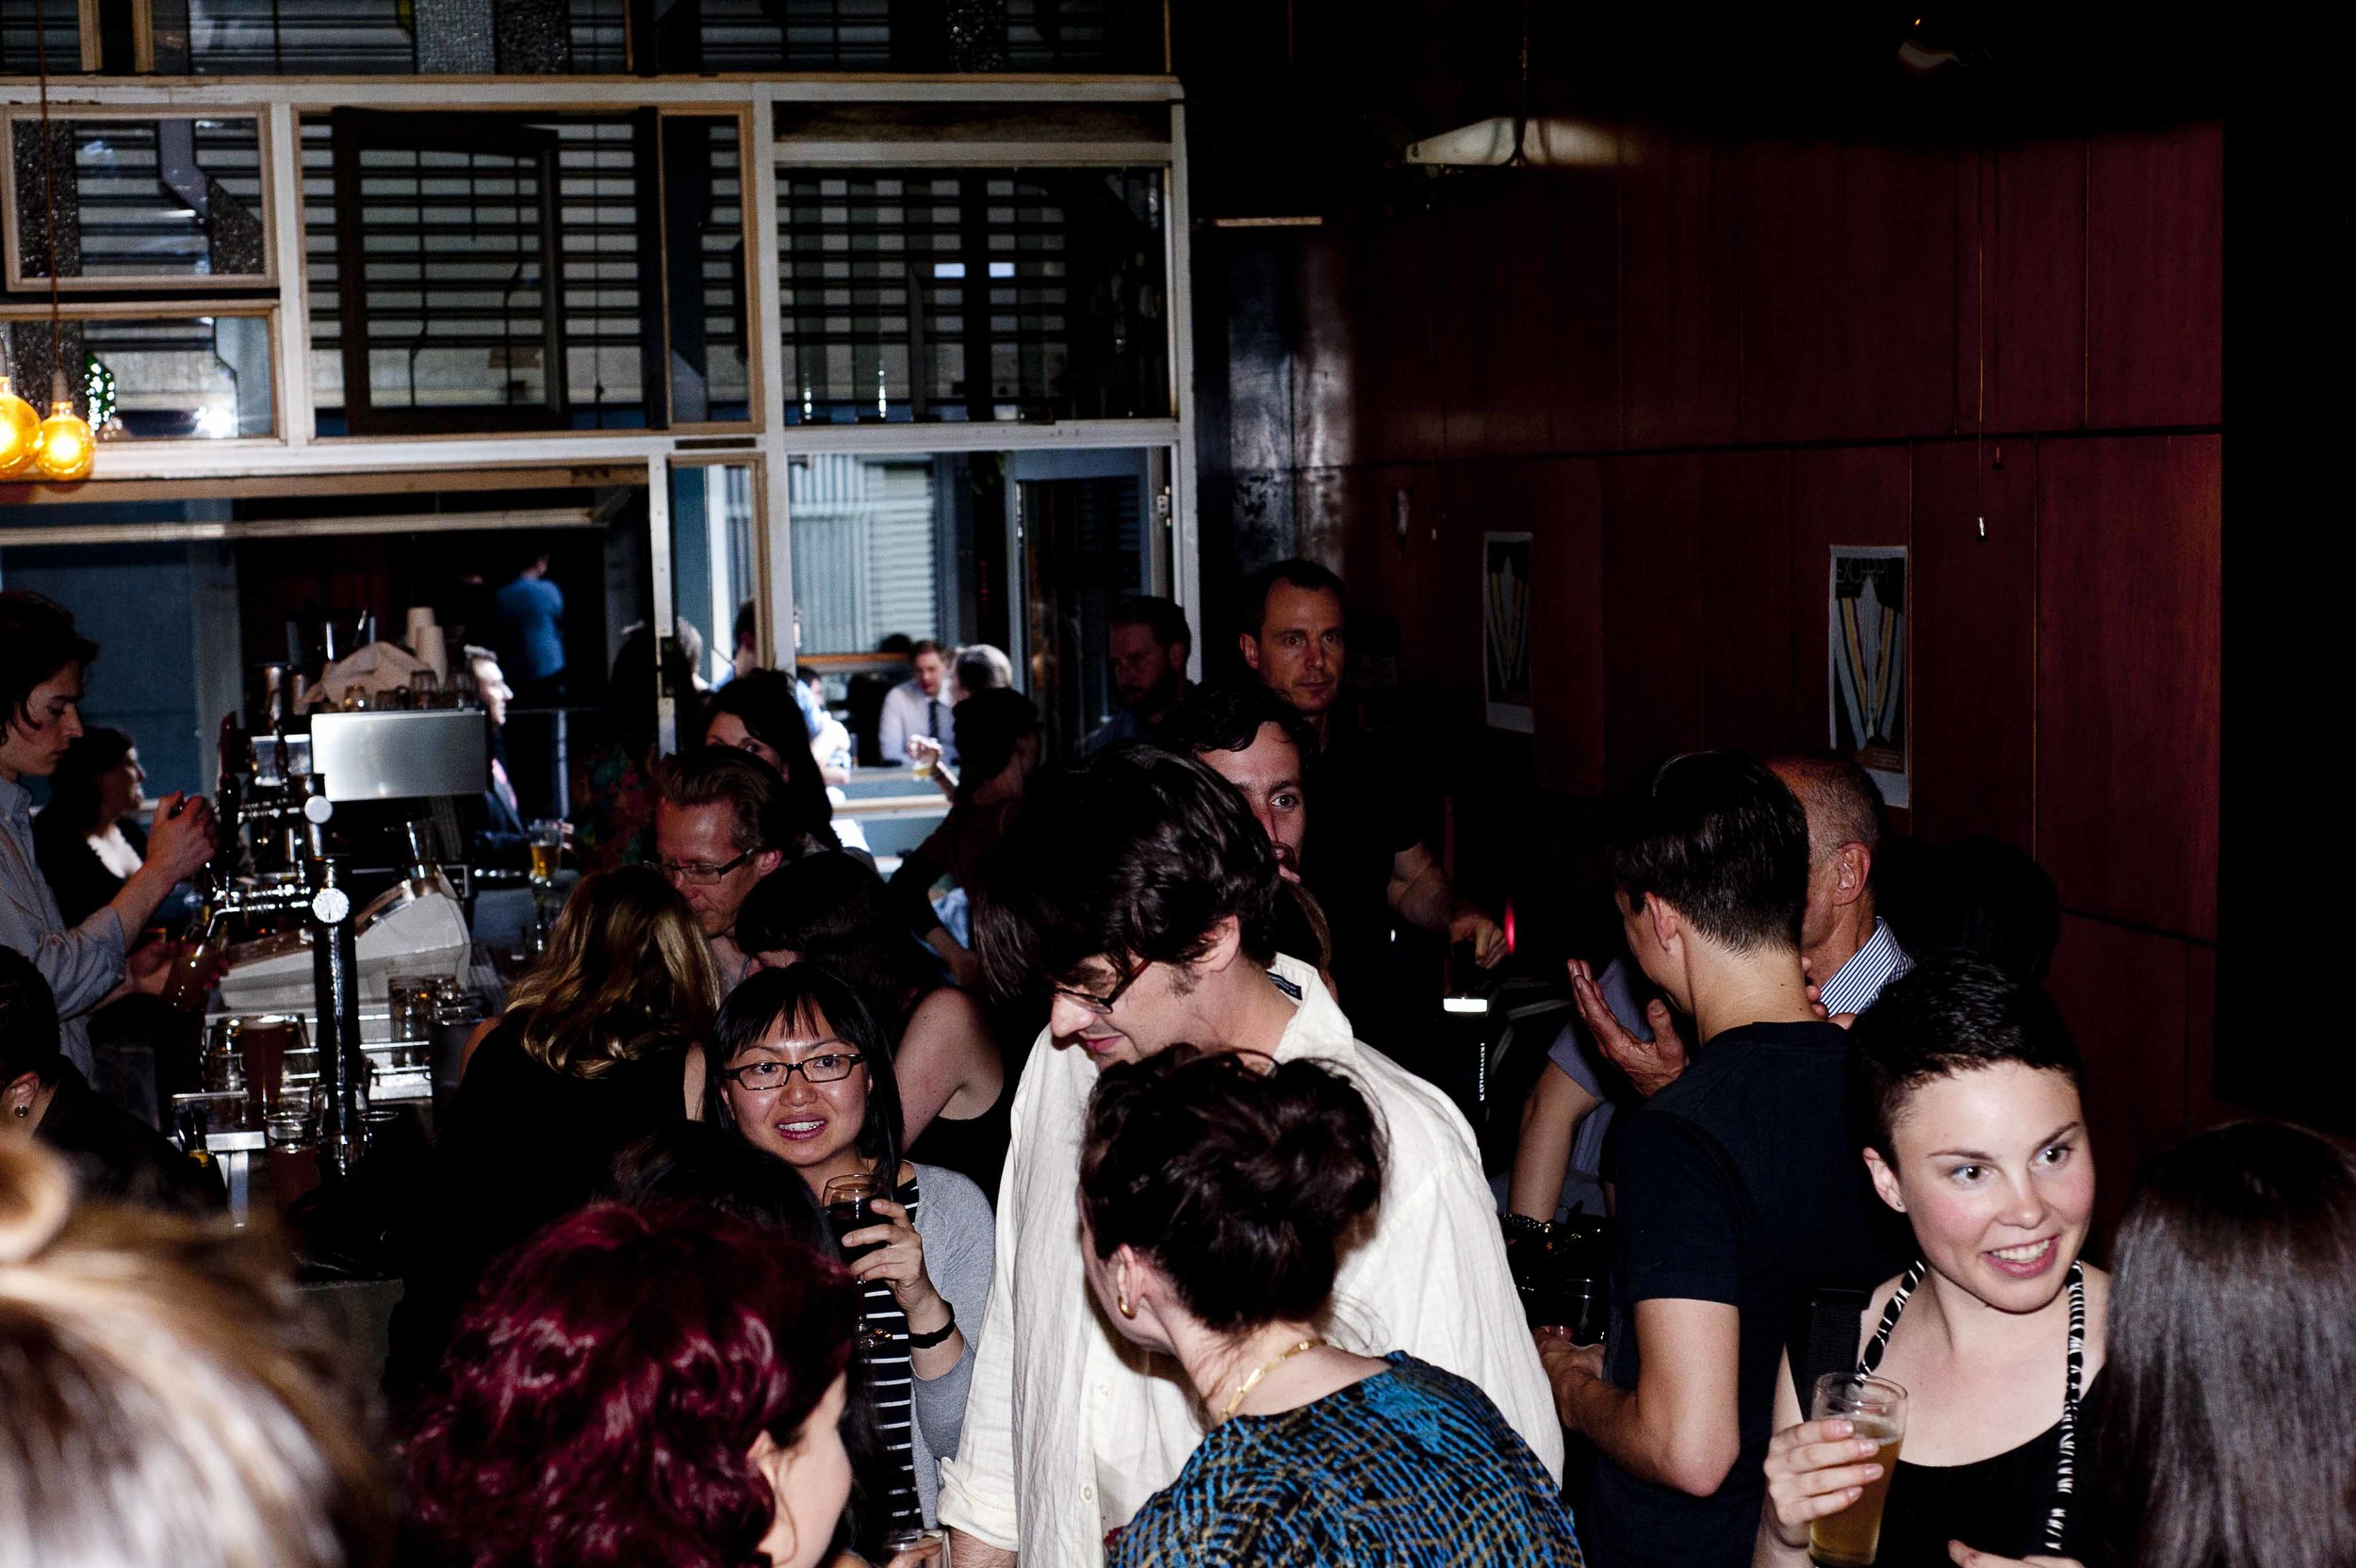 Excerpt Magazine Issue #1 Launch at Meyers Place, November, 2011. Such a great bar that we returned there this year for the launch of Issue #5. Photograph by Heather Lighton